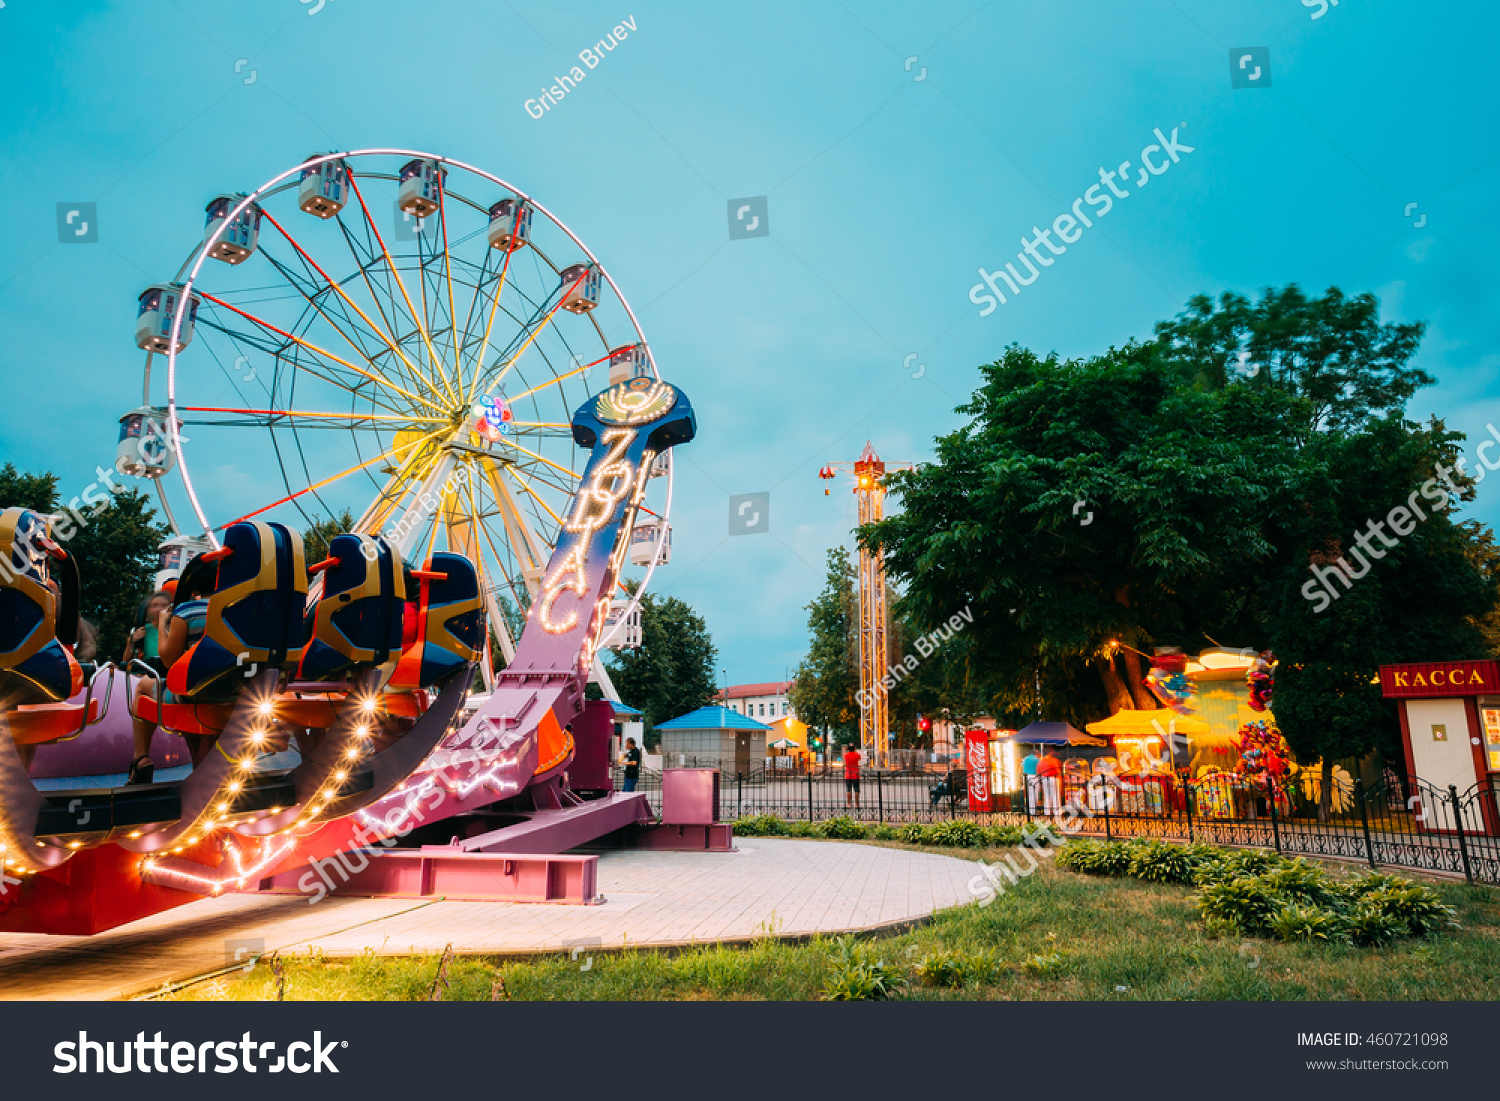 Gomel amusement park: description, prices and useful information for visitors